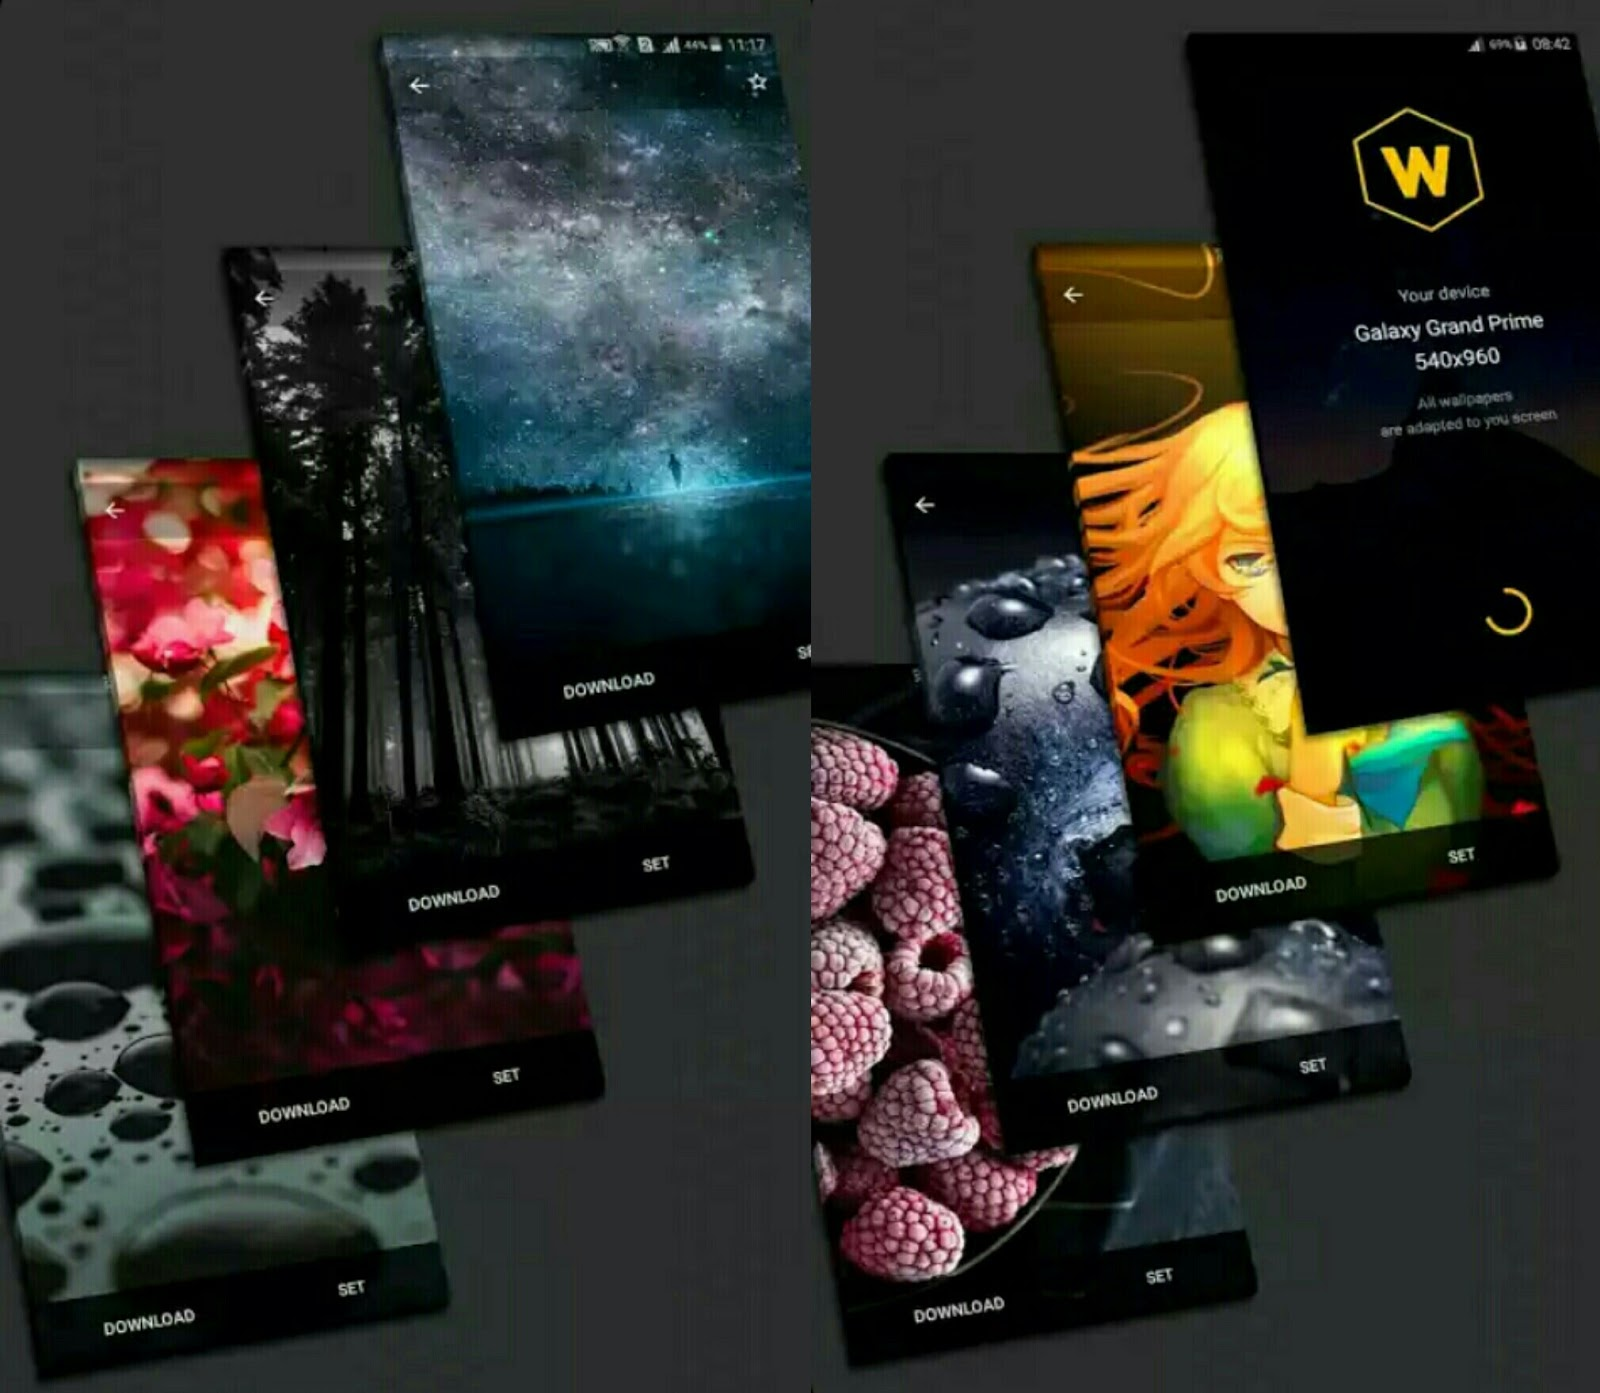 this is an amazing hd wallpaper app you can try bring your screen to life with exclusive hd wallpapers delivered to you by android station team